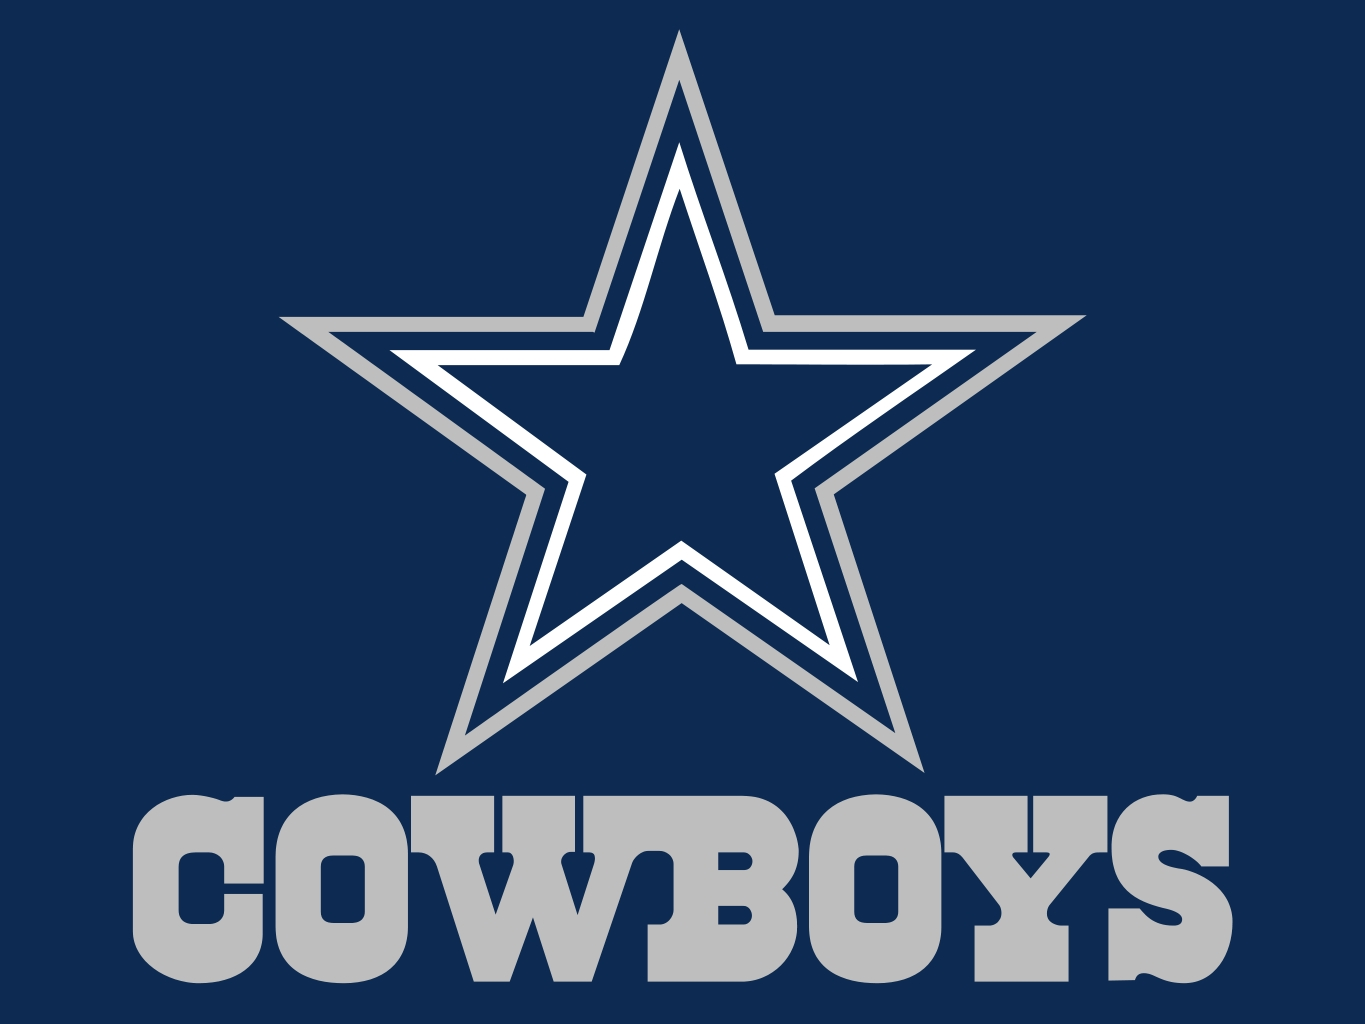 nfl teams dallas cowboys collins flags blog rh collinsflags com